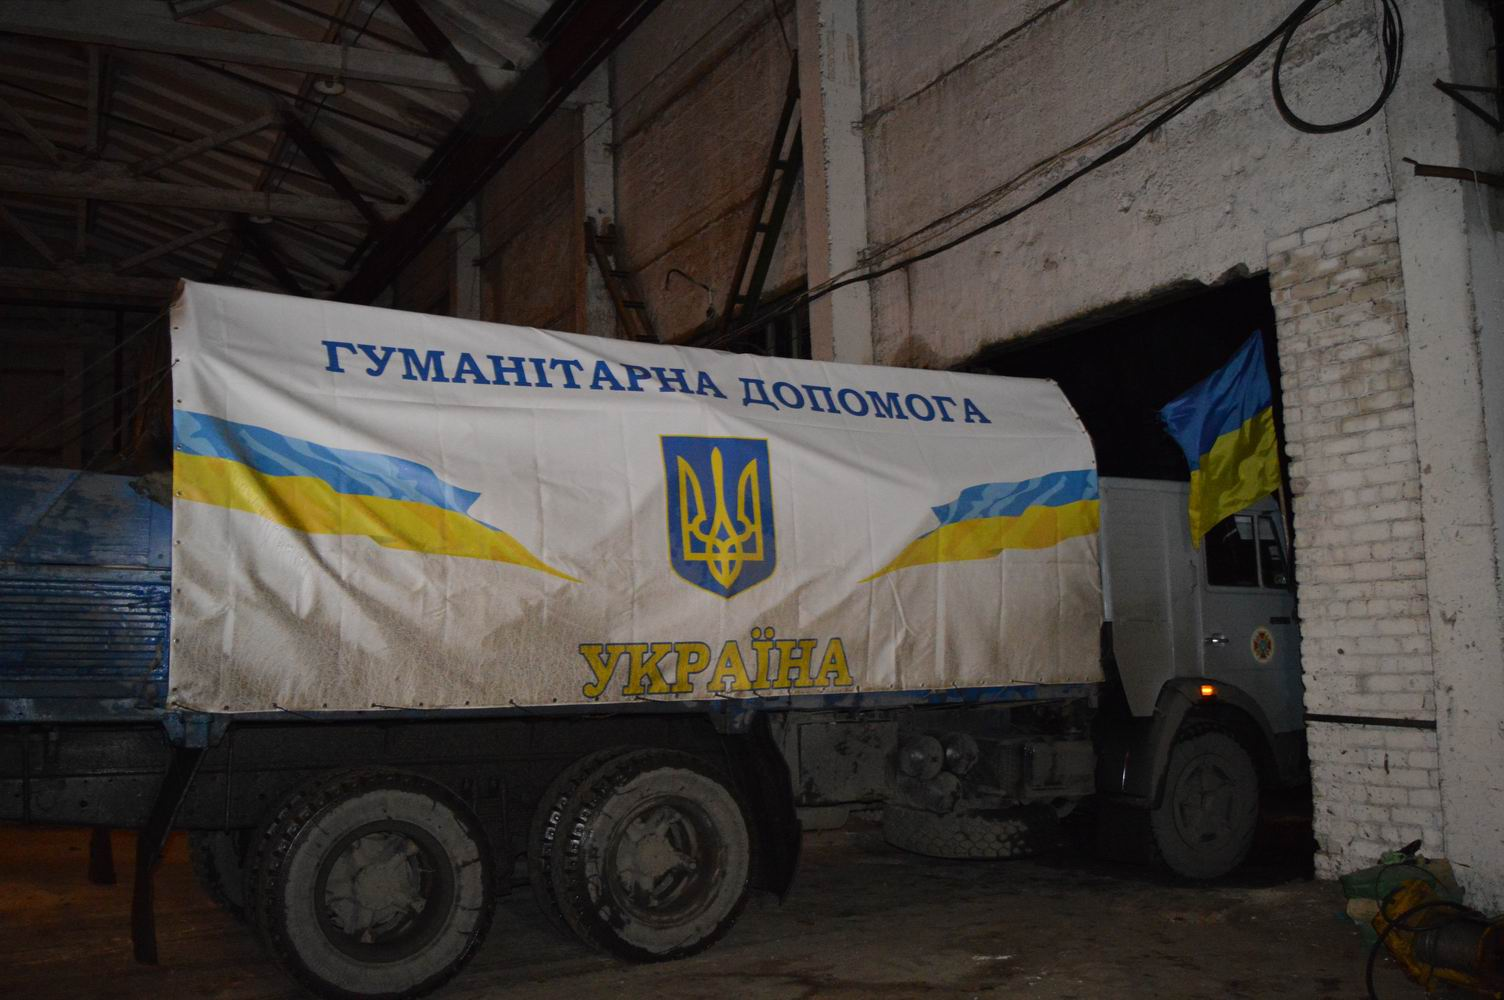 The humanitarian cargo has arrived to Severodonetsk